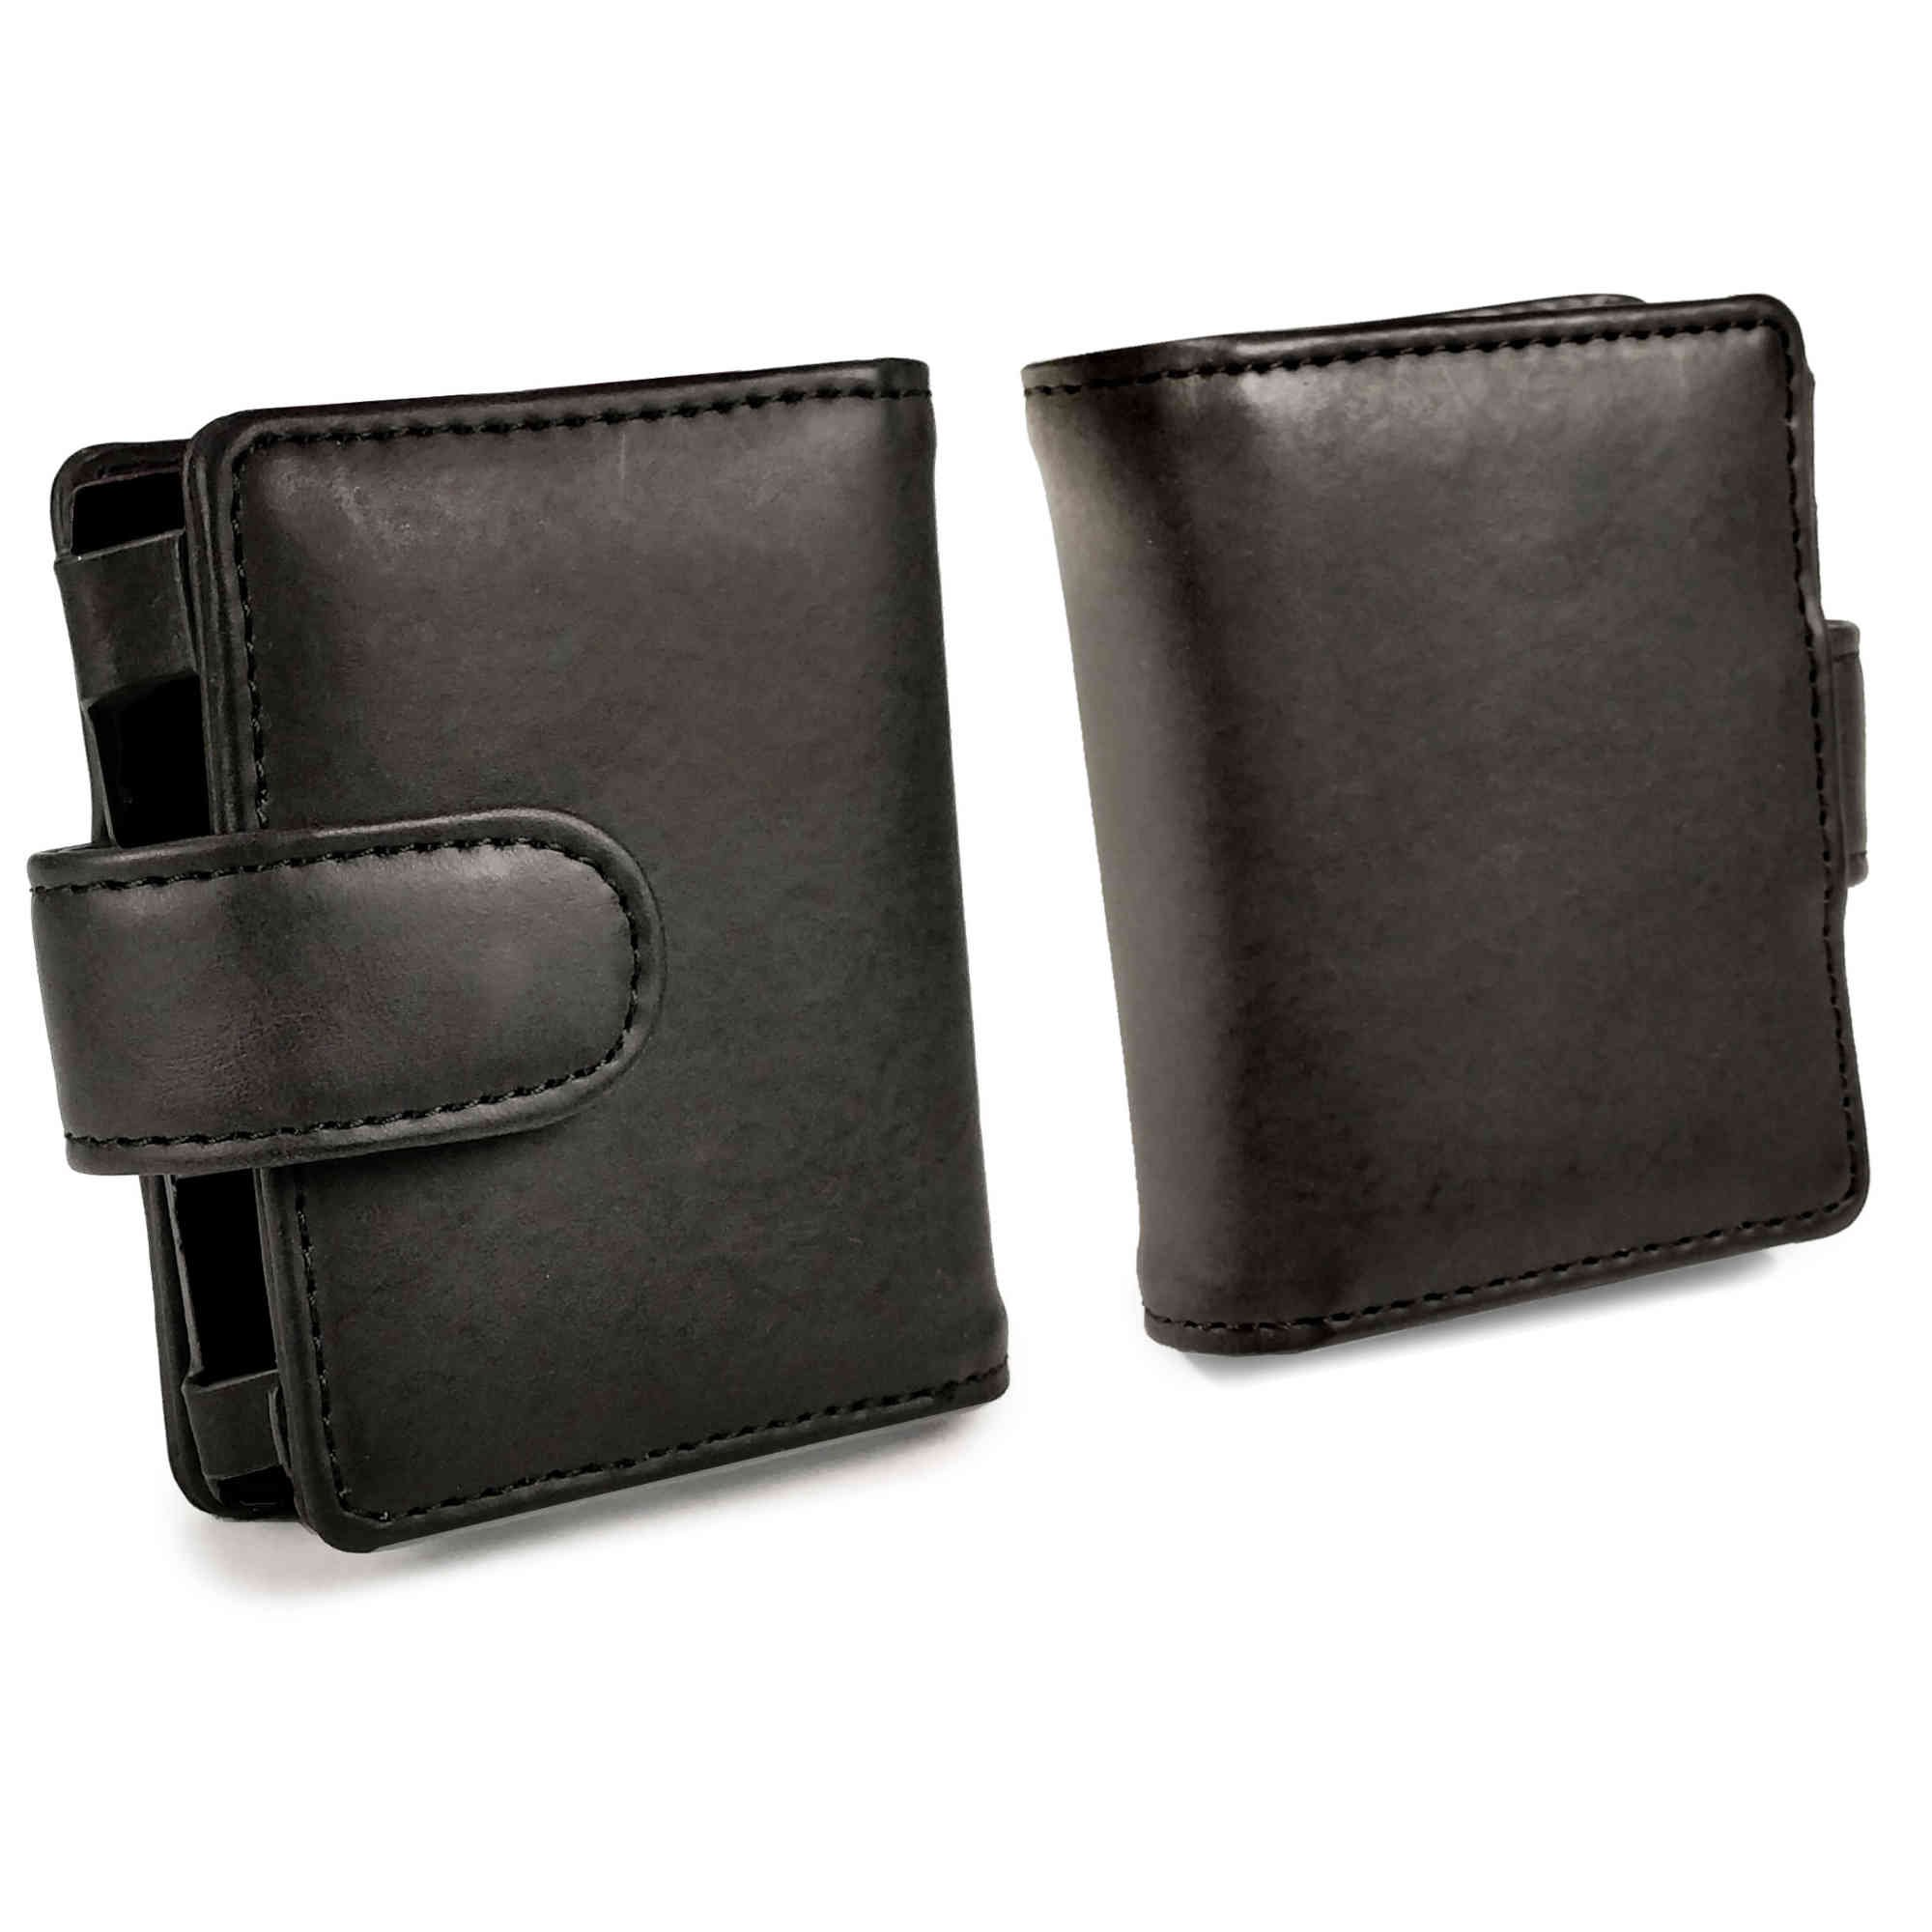 Tuff-luv Genuine Western Leather Case Cover for Cowon Plenue D - MP3 - Black by Tuff-luv (Image #3)